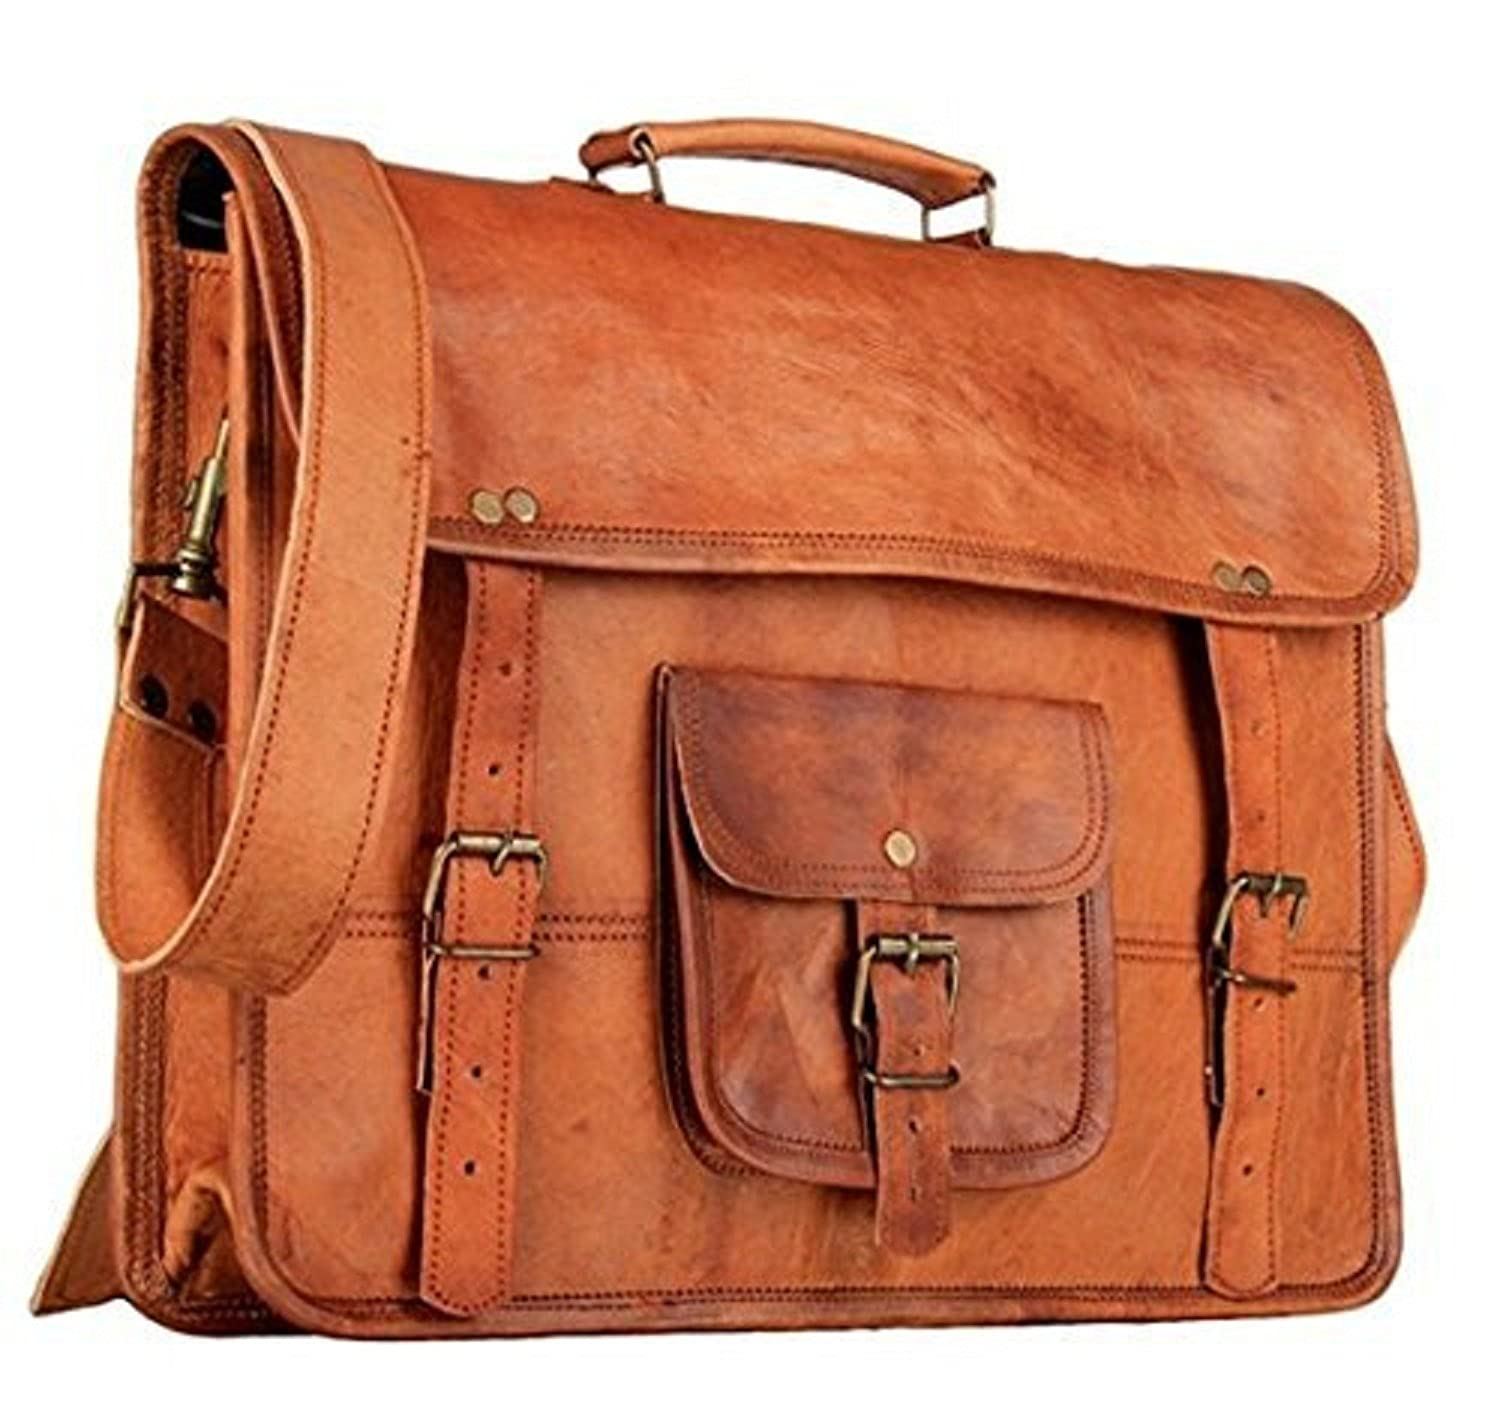 Tuzech Genuine Leather Laptop Vintage Messenger Bag Handmade Unisex Fits Laptop Upto 13 inches THE IMMART GLOBAL